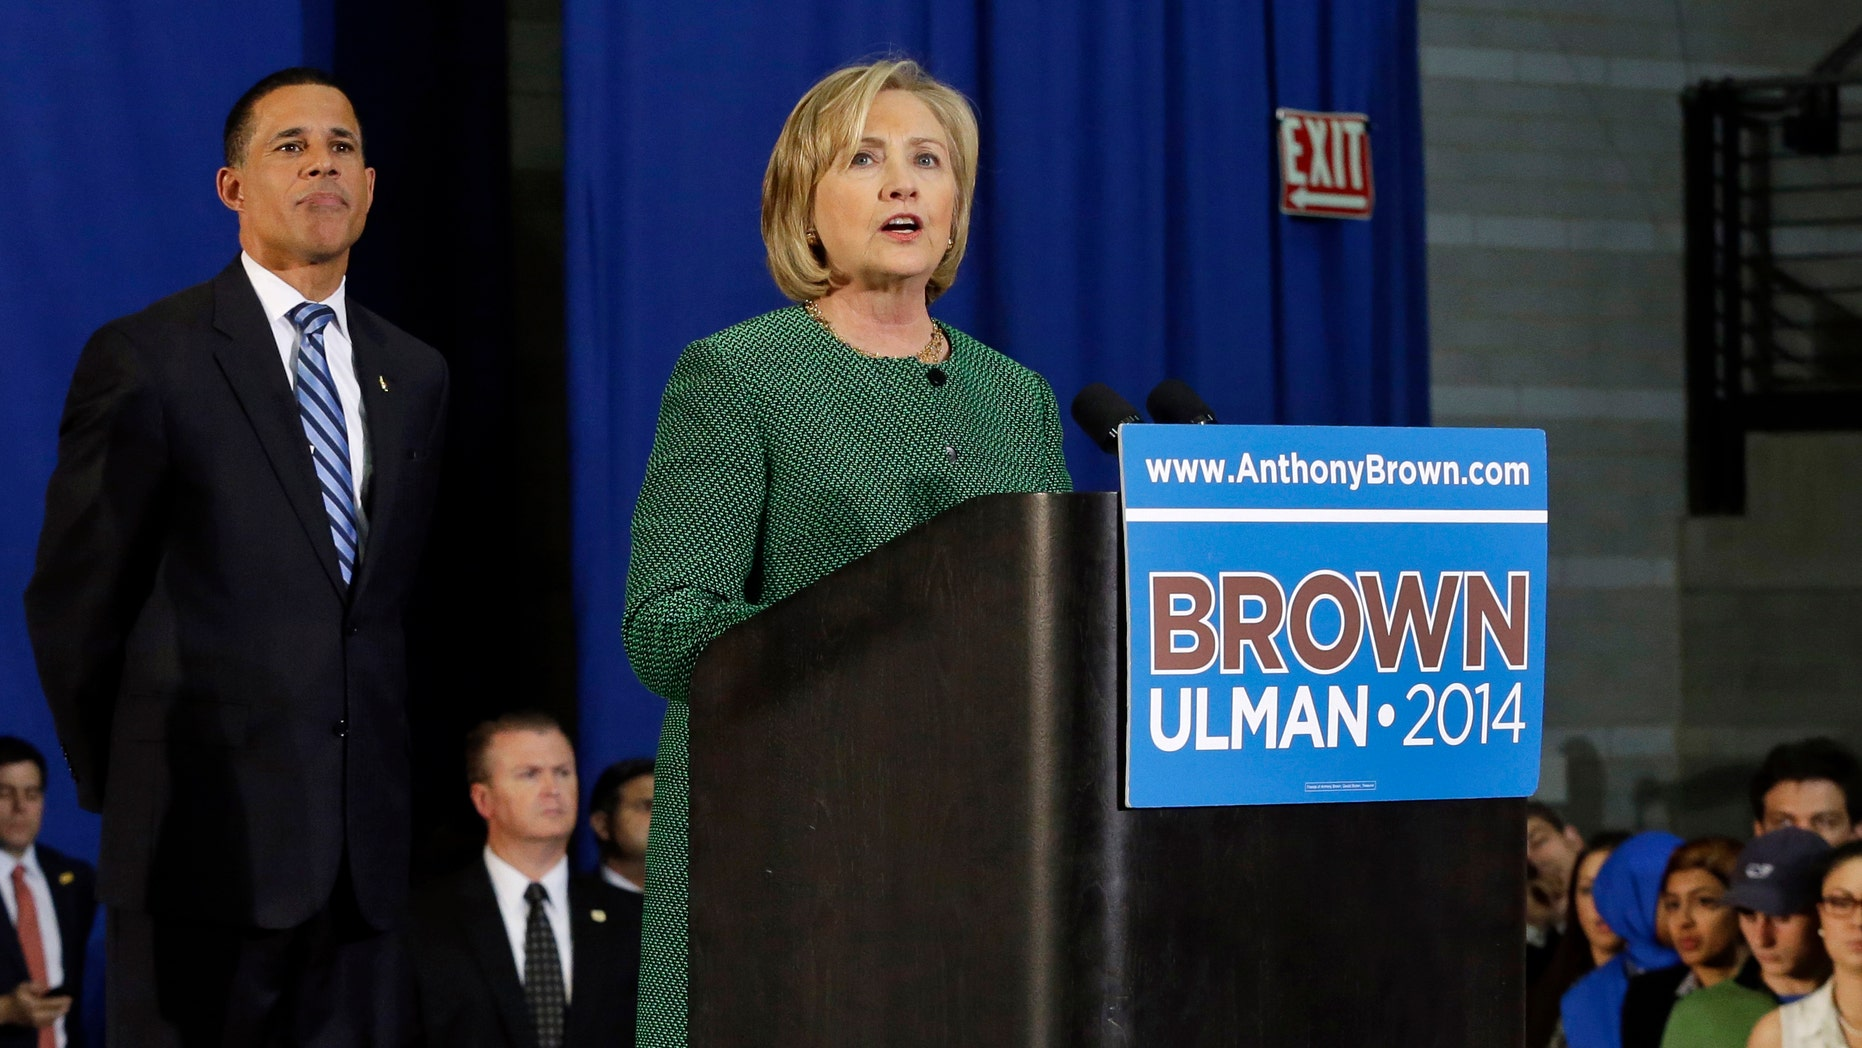 Former Secretary of State Hillary Rodham Clinton, right, campaigns for Maryland Democratic gubernatorial candidate, Lt. Gov. Anthony Brown, left, during a rally at the University of Maryland, Thursday, Oct. 30, 2014, in College Park, Md. (AP Photo/Patrick Semansky)